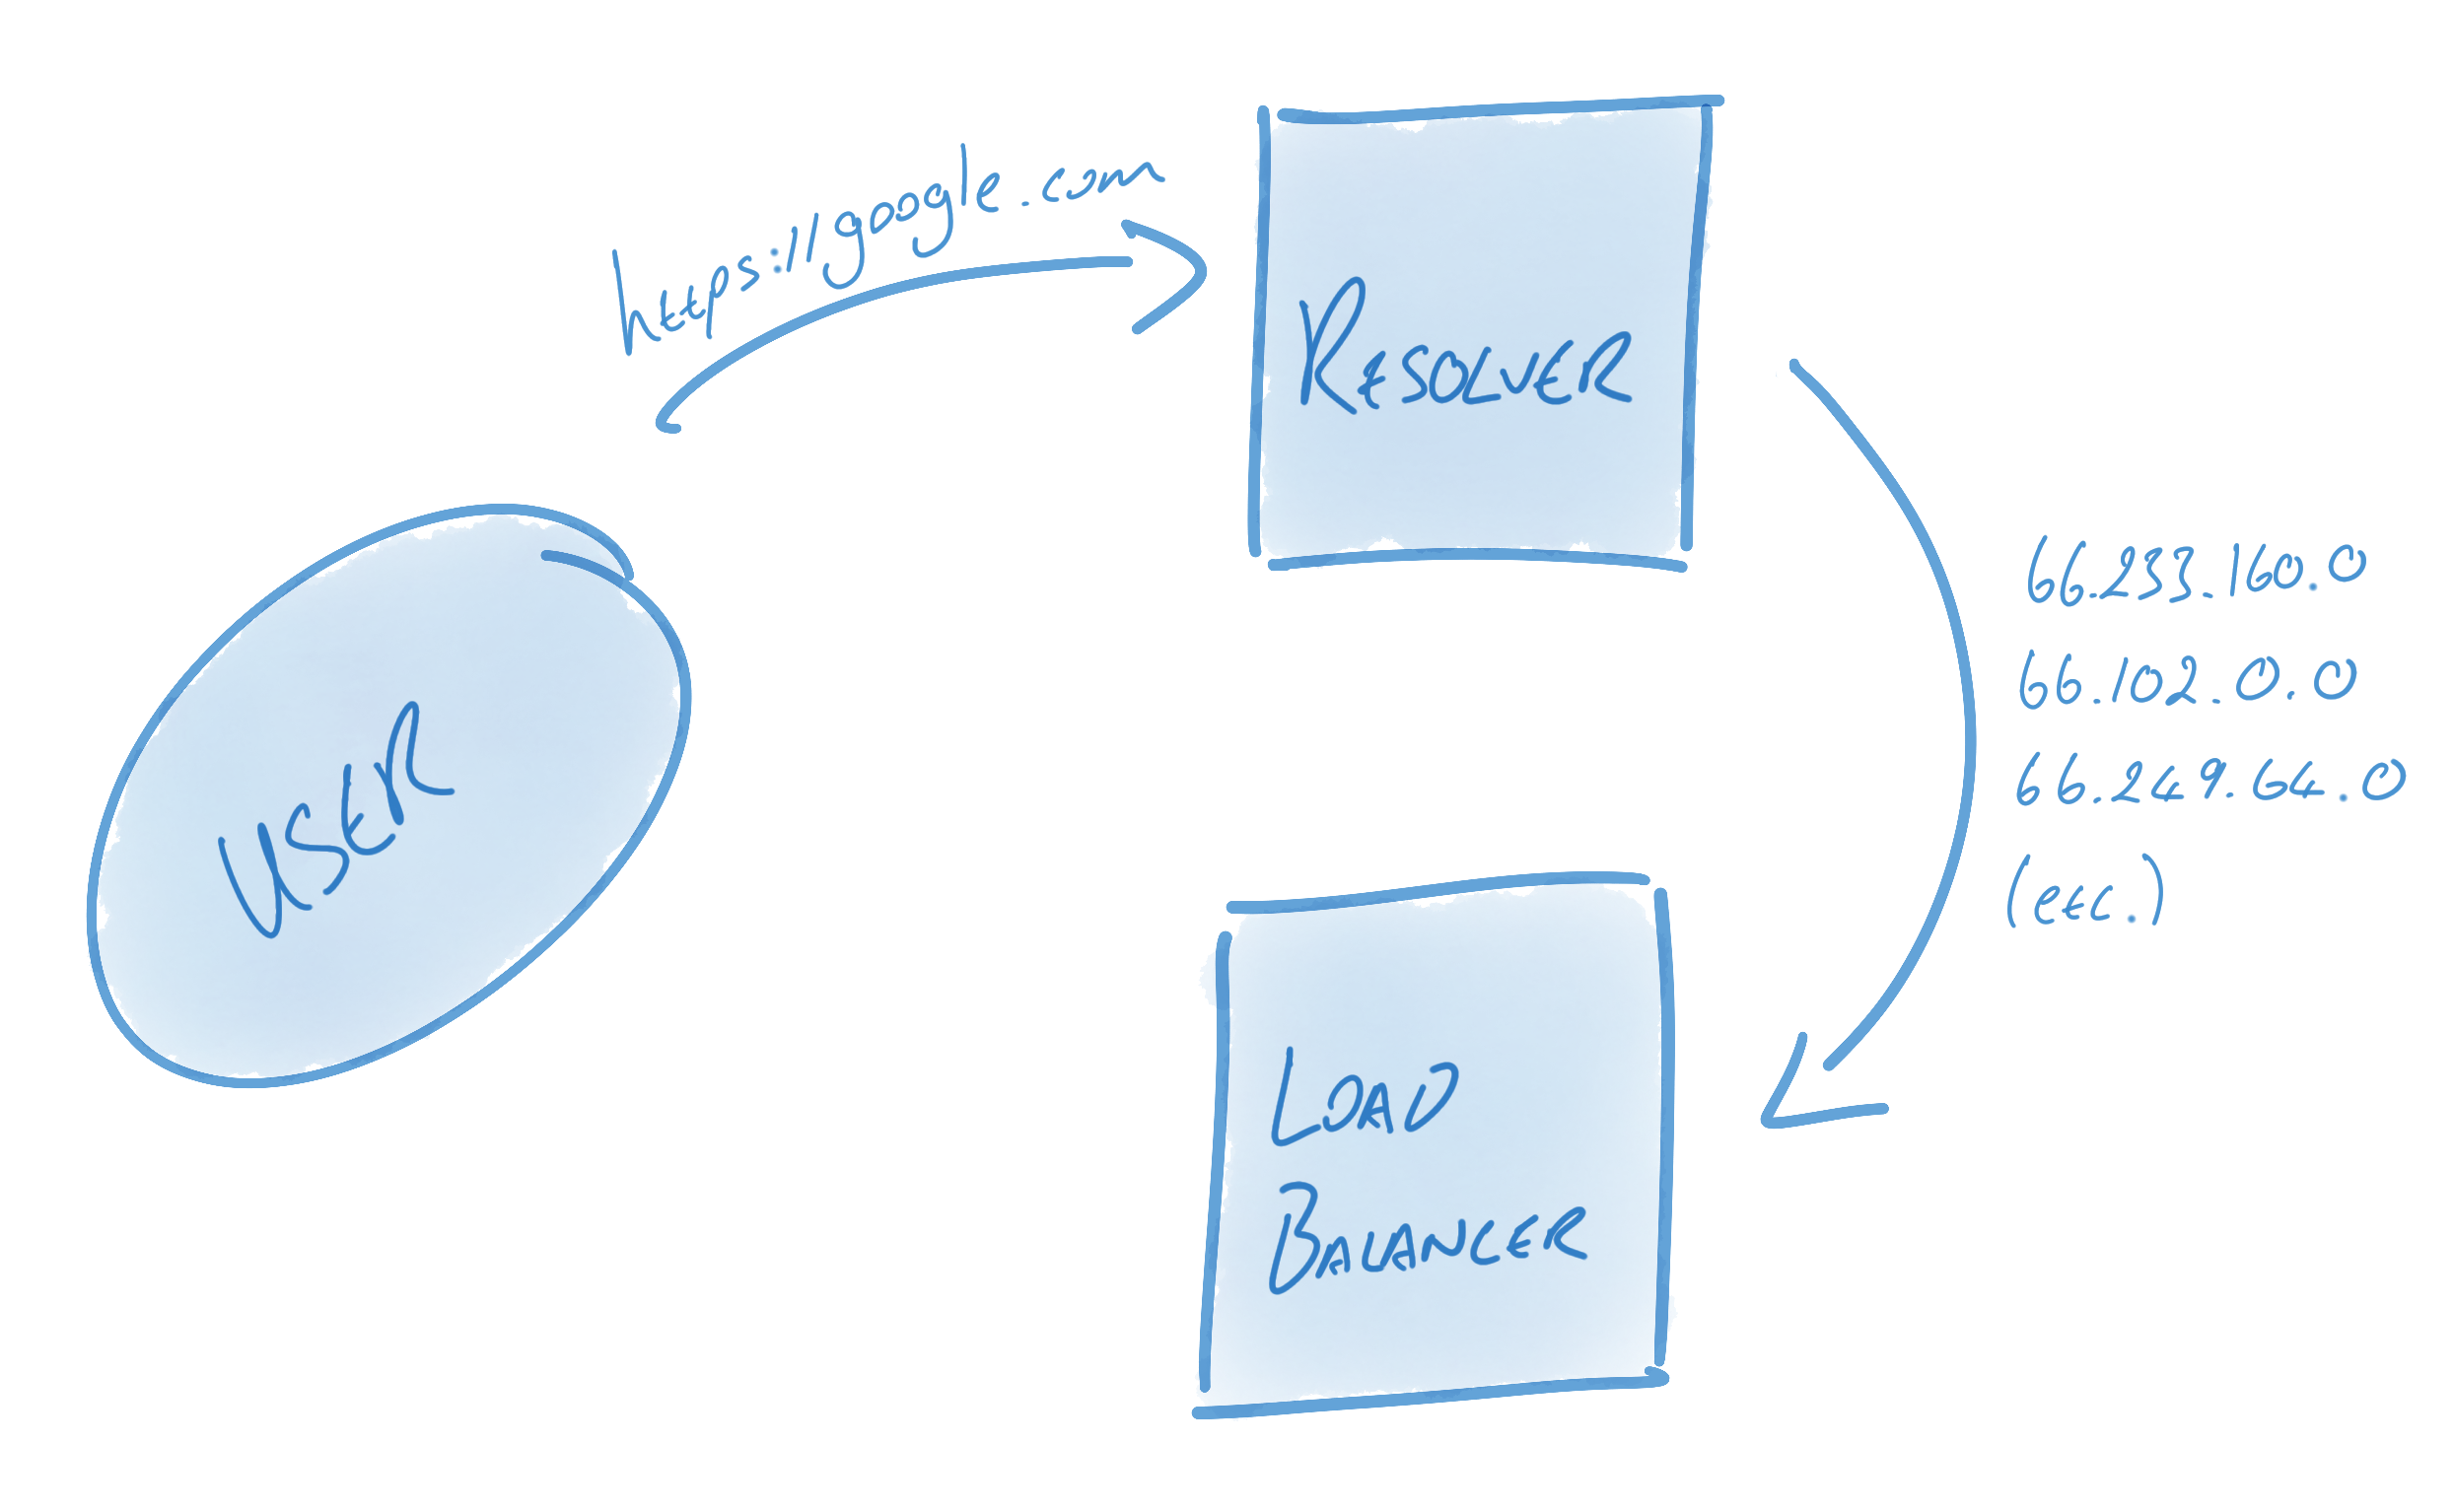 Resolvers and Load Balancers